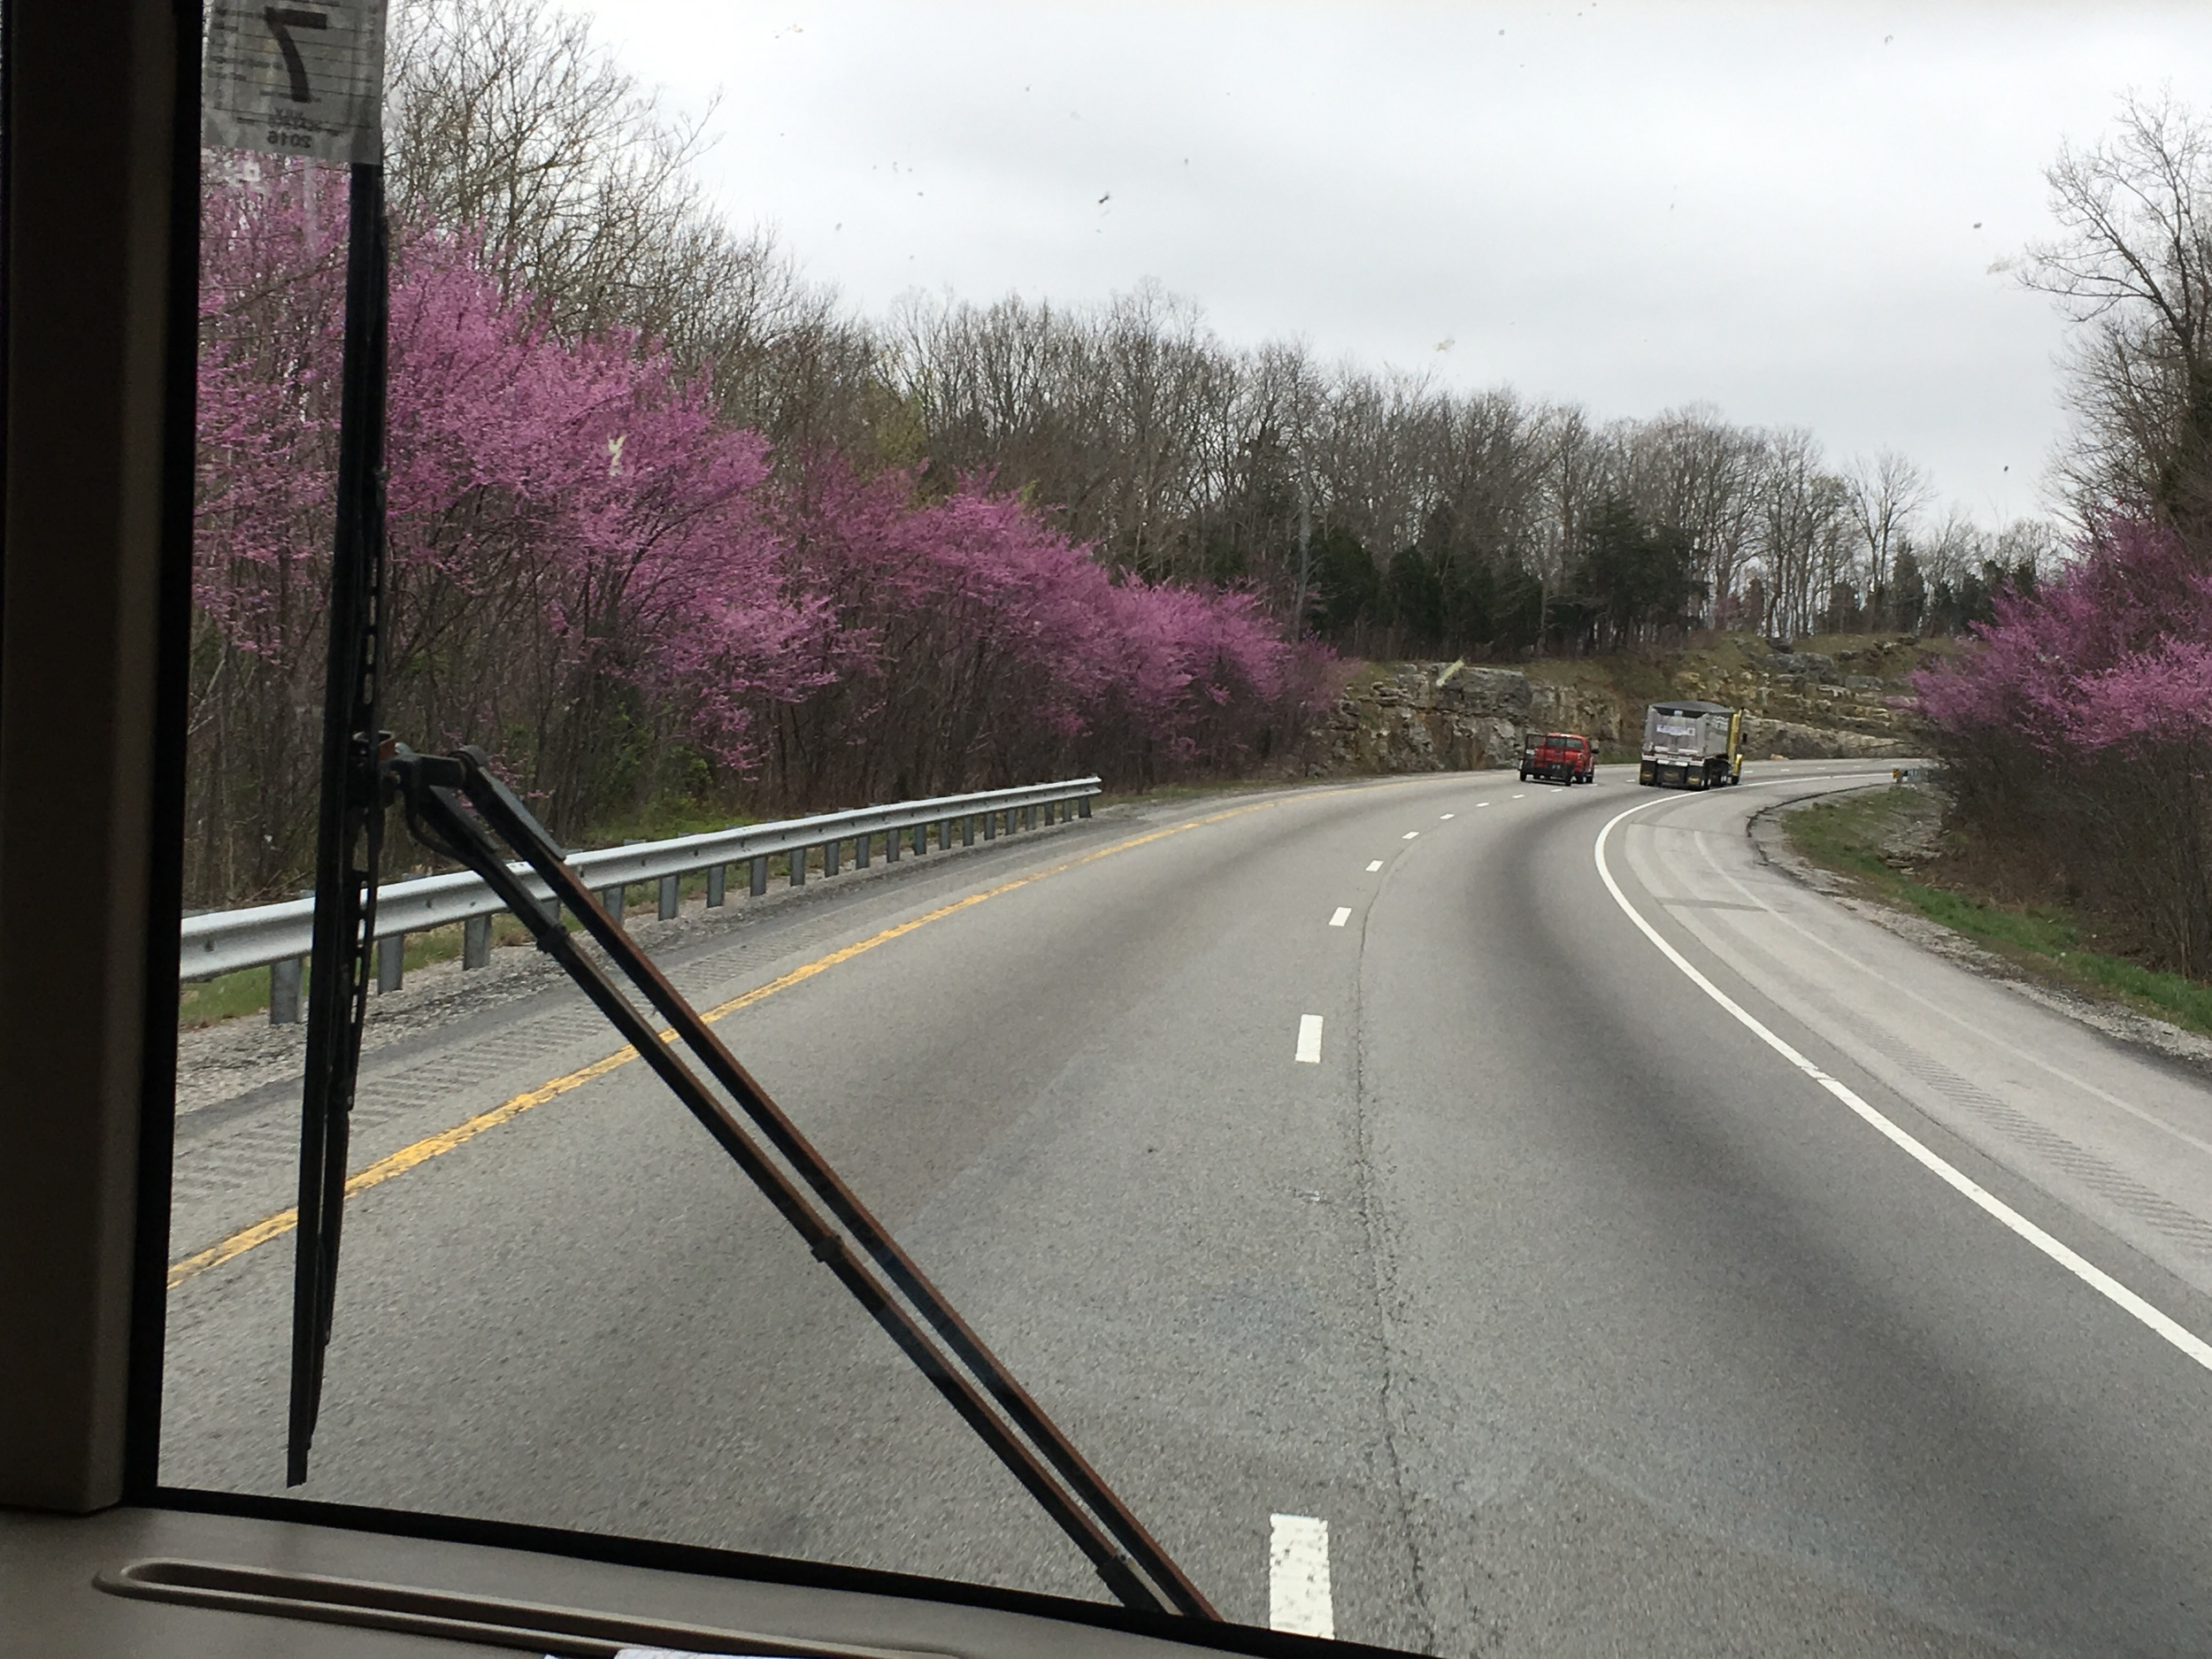 Love the purple trees on the roadside